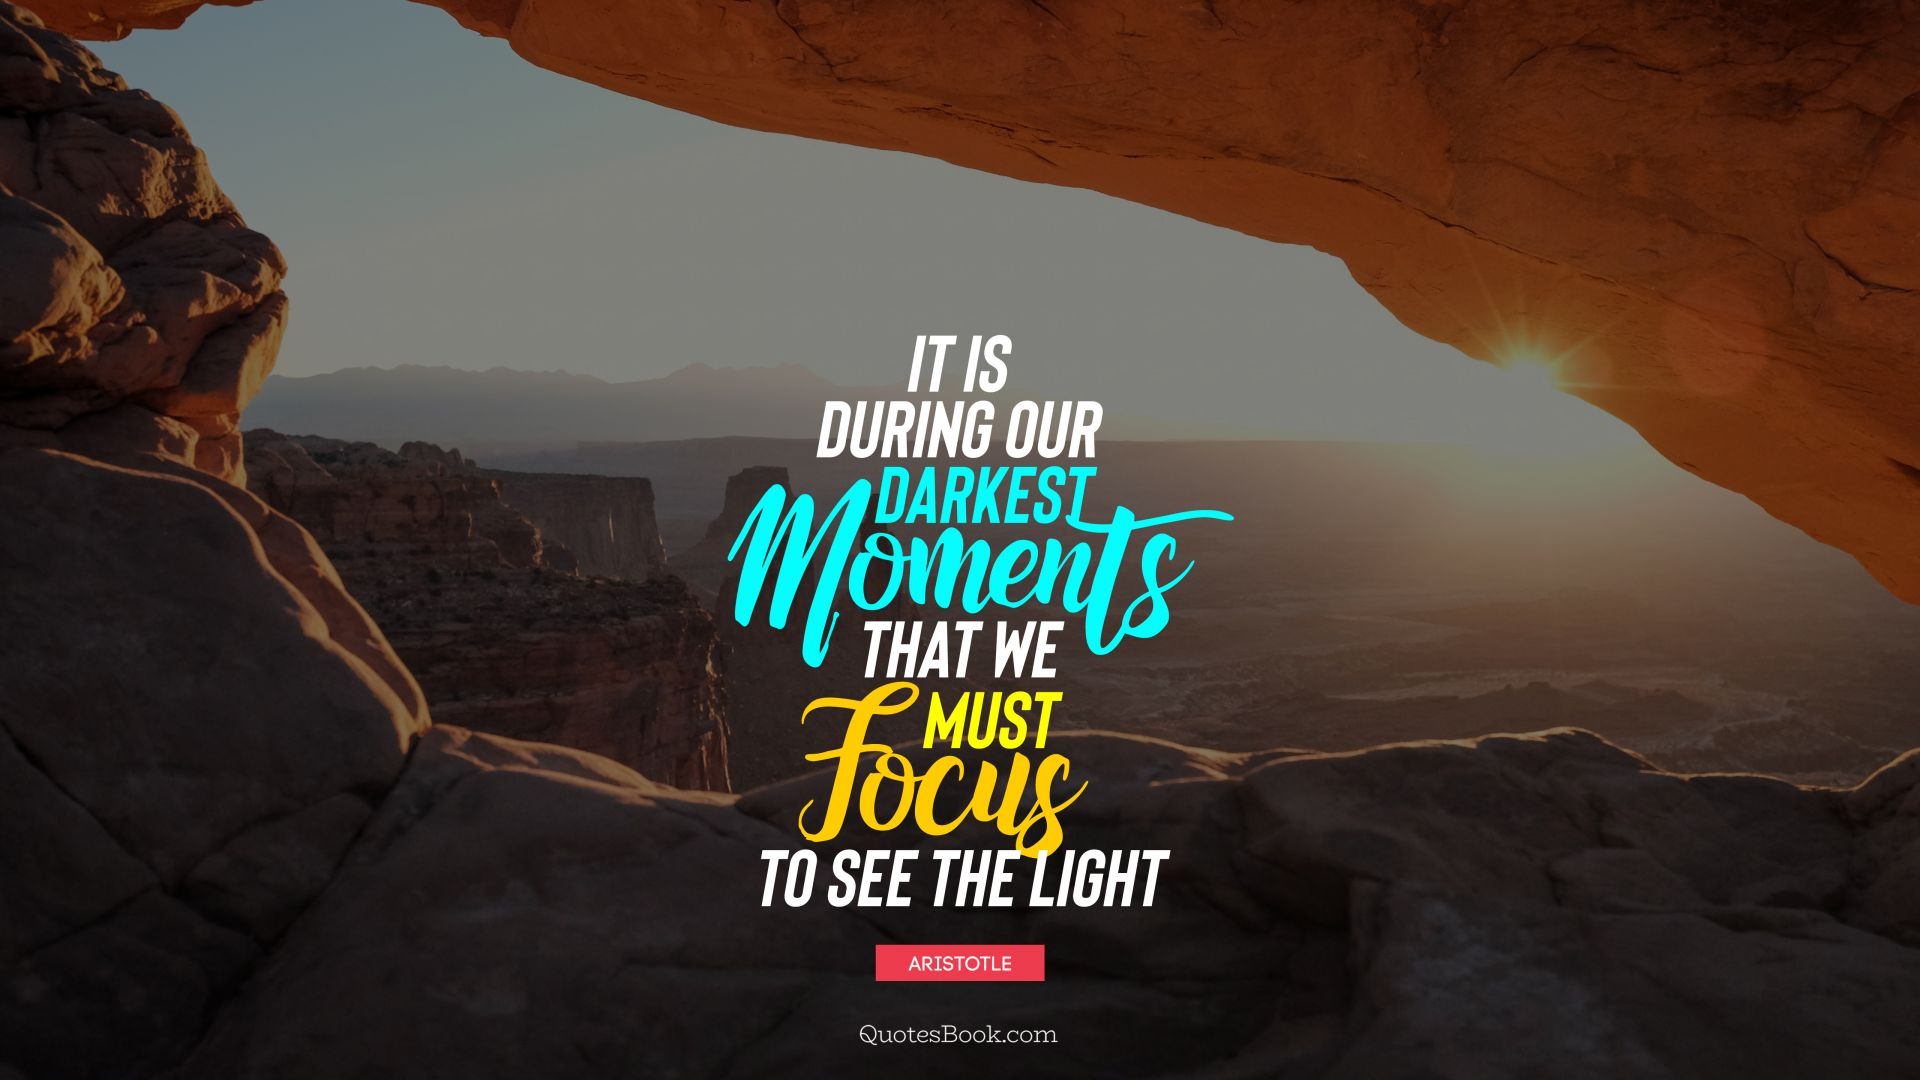 It is during our darkest moments that we must focus to see the light. - Quote by Aristotle